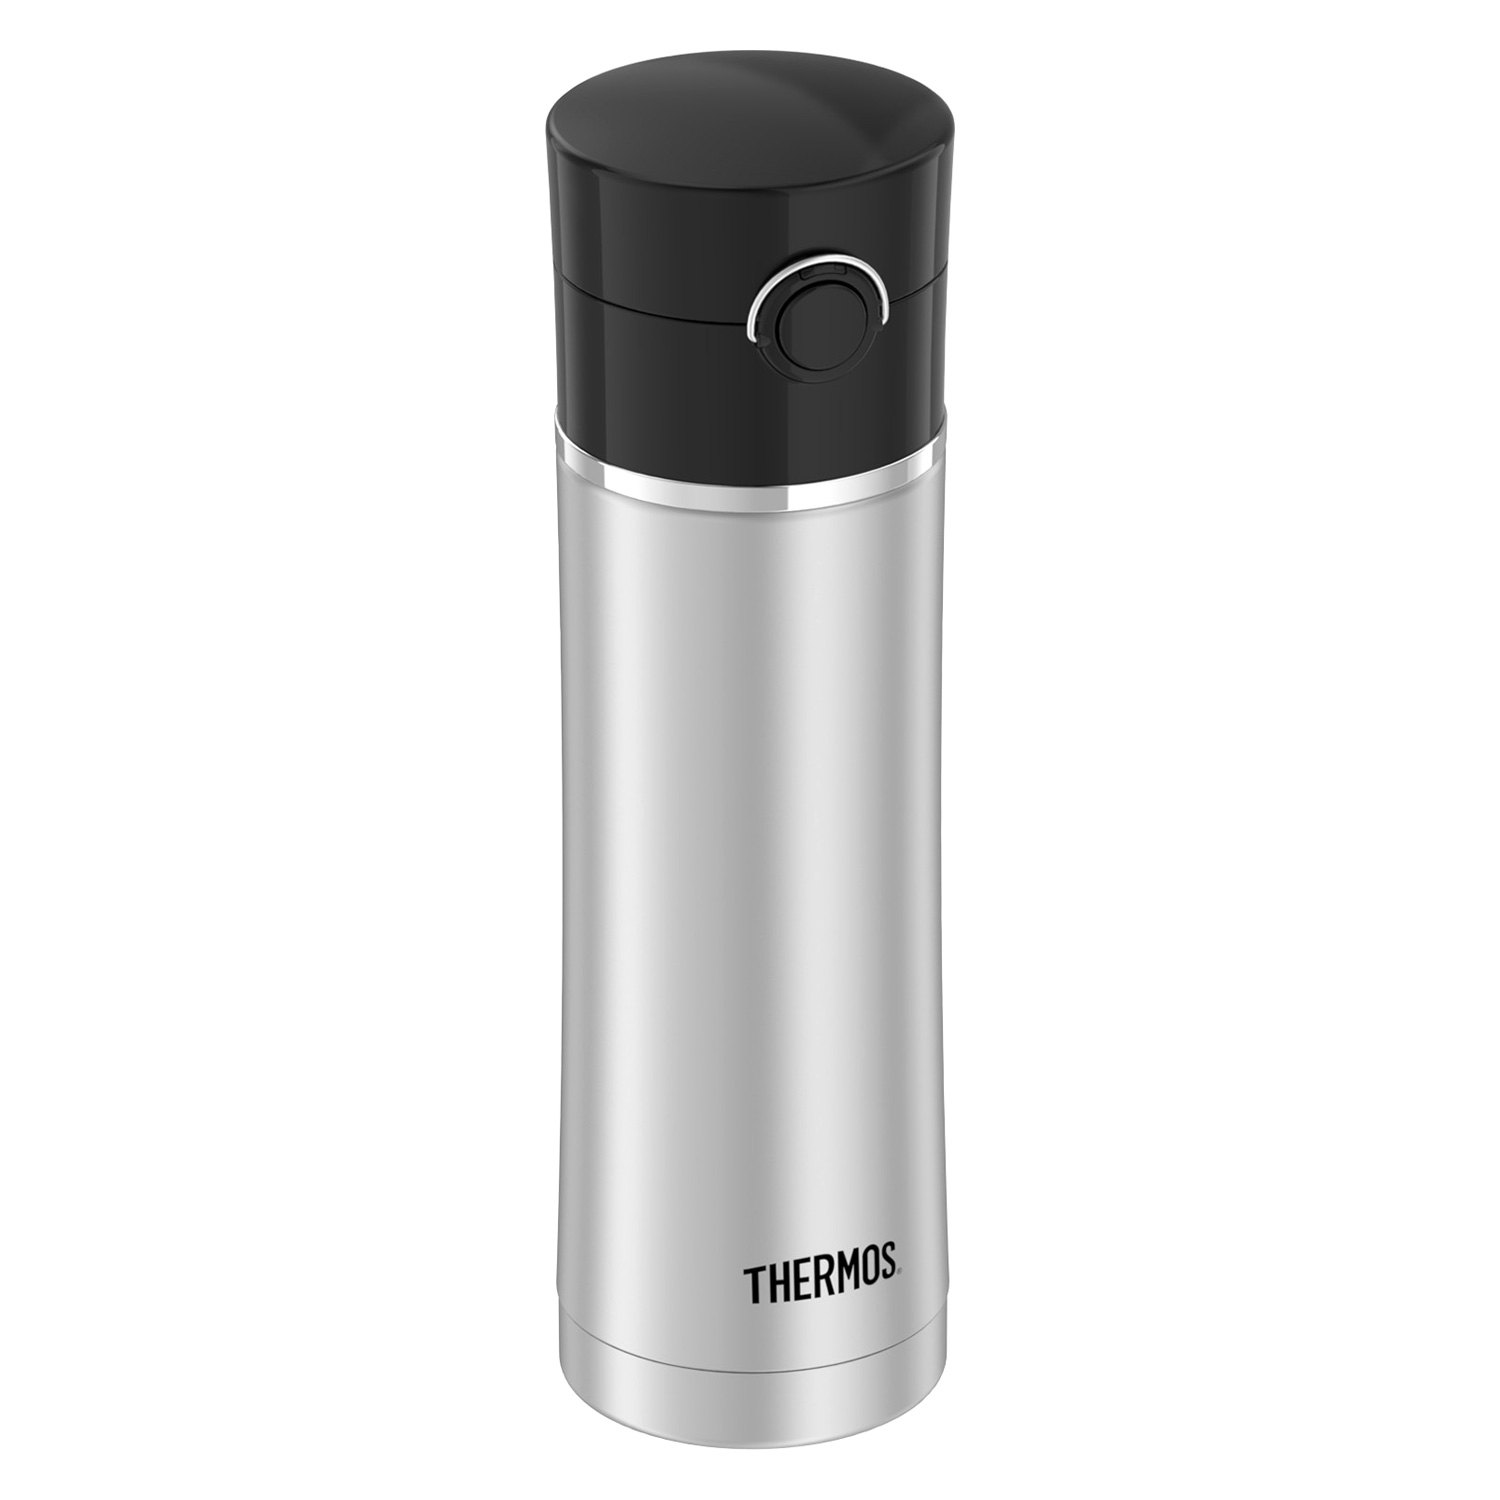 Thermos 174 Ns402bk4 Sipp Vacuum Insulated 16 Oz